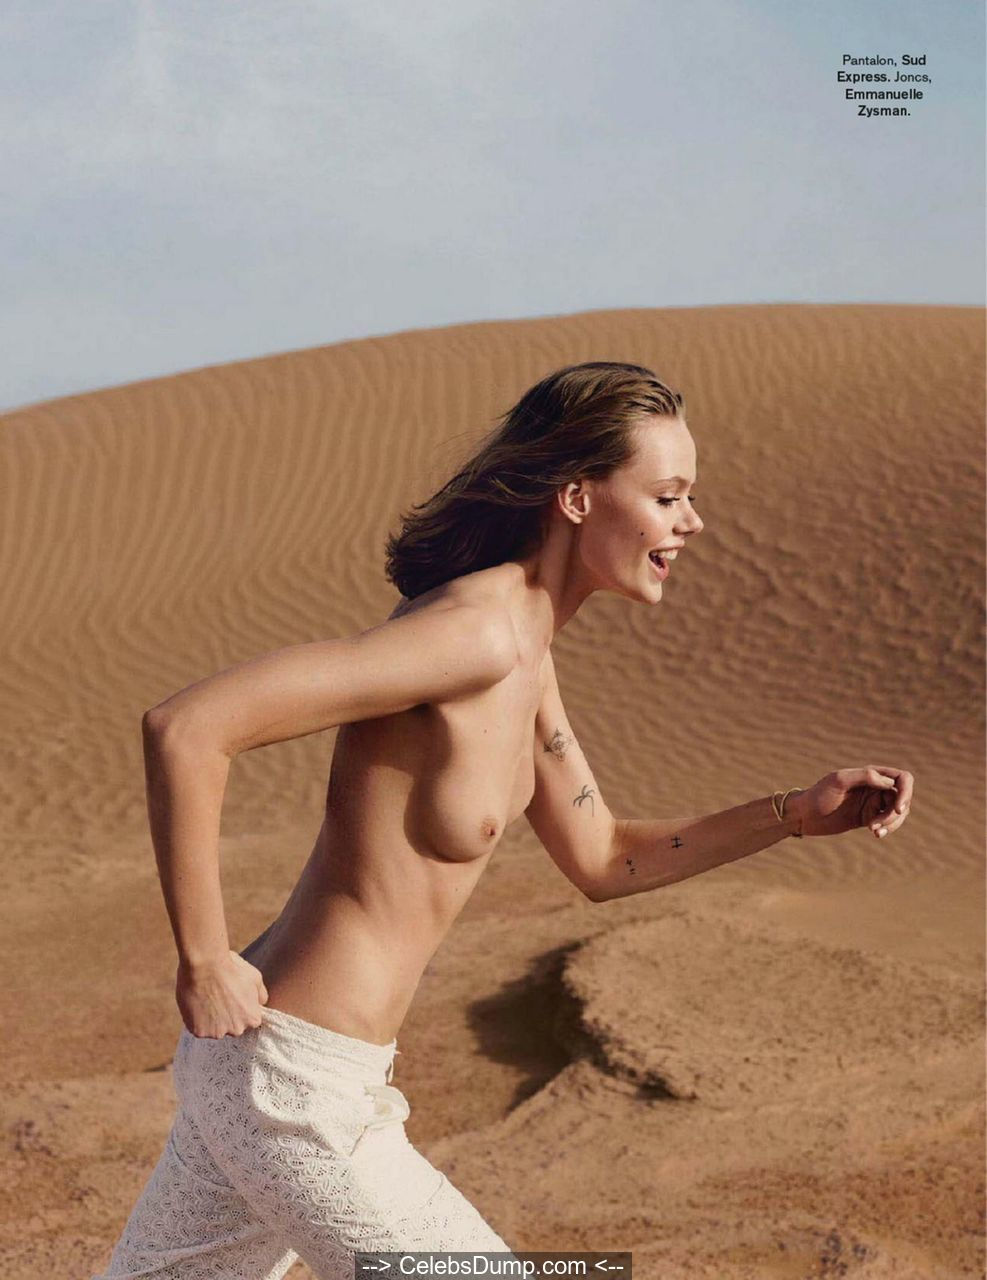 Frida Gustavsson topless for Glamour Magazine, France